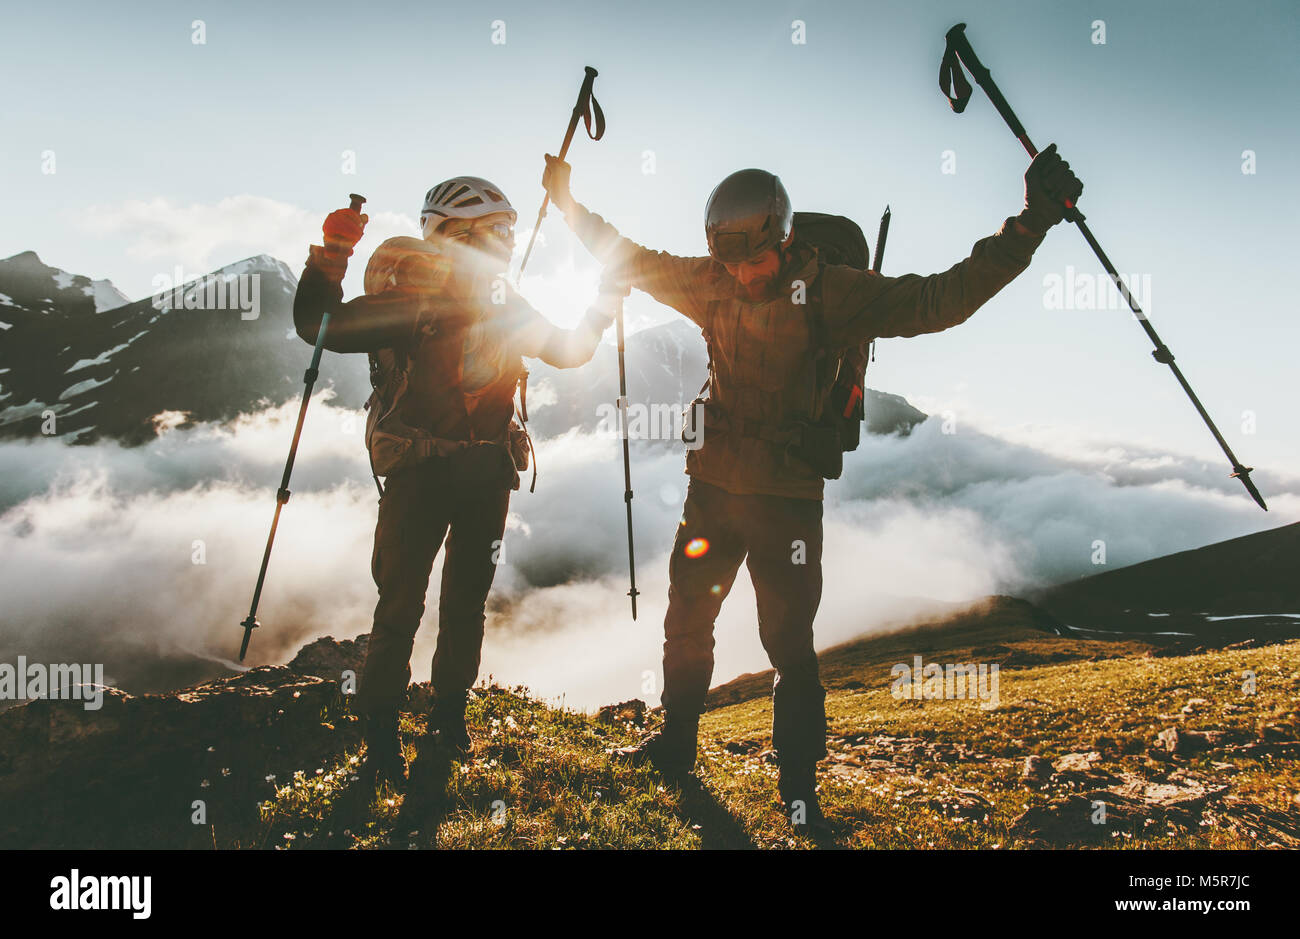 Happy travel couple man and woman on mountain summit love and adventure hiking Lifestyle wanderlust concept sunset - Stock Image